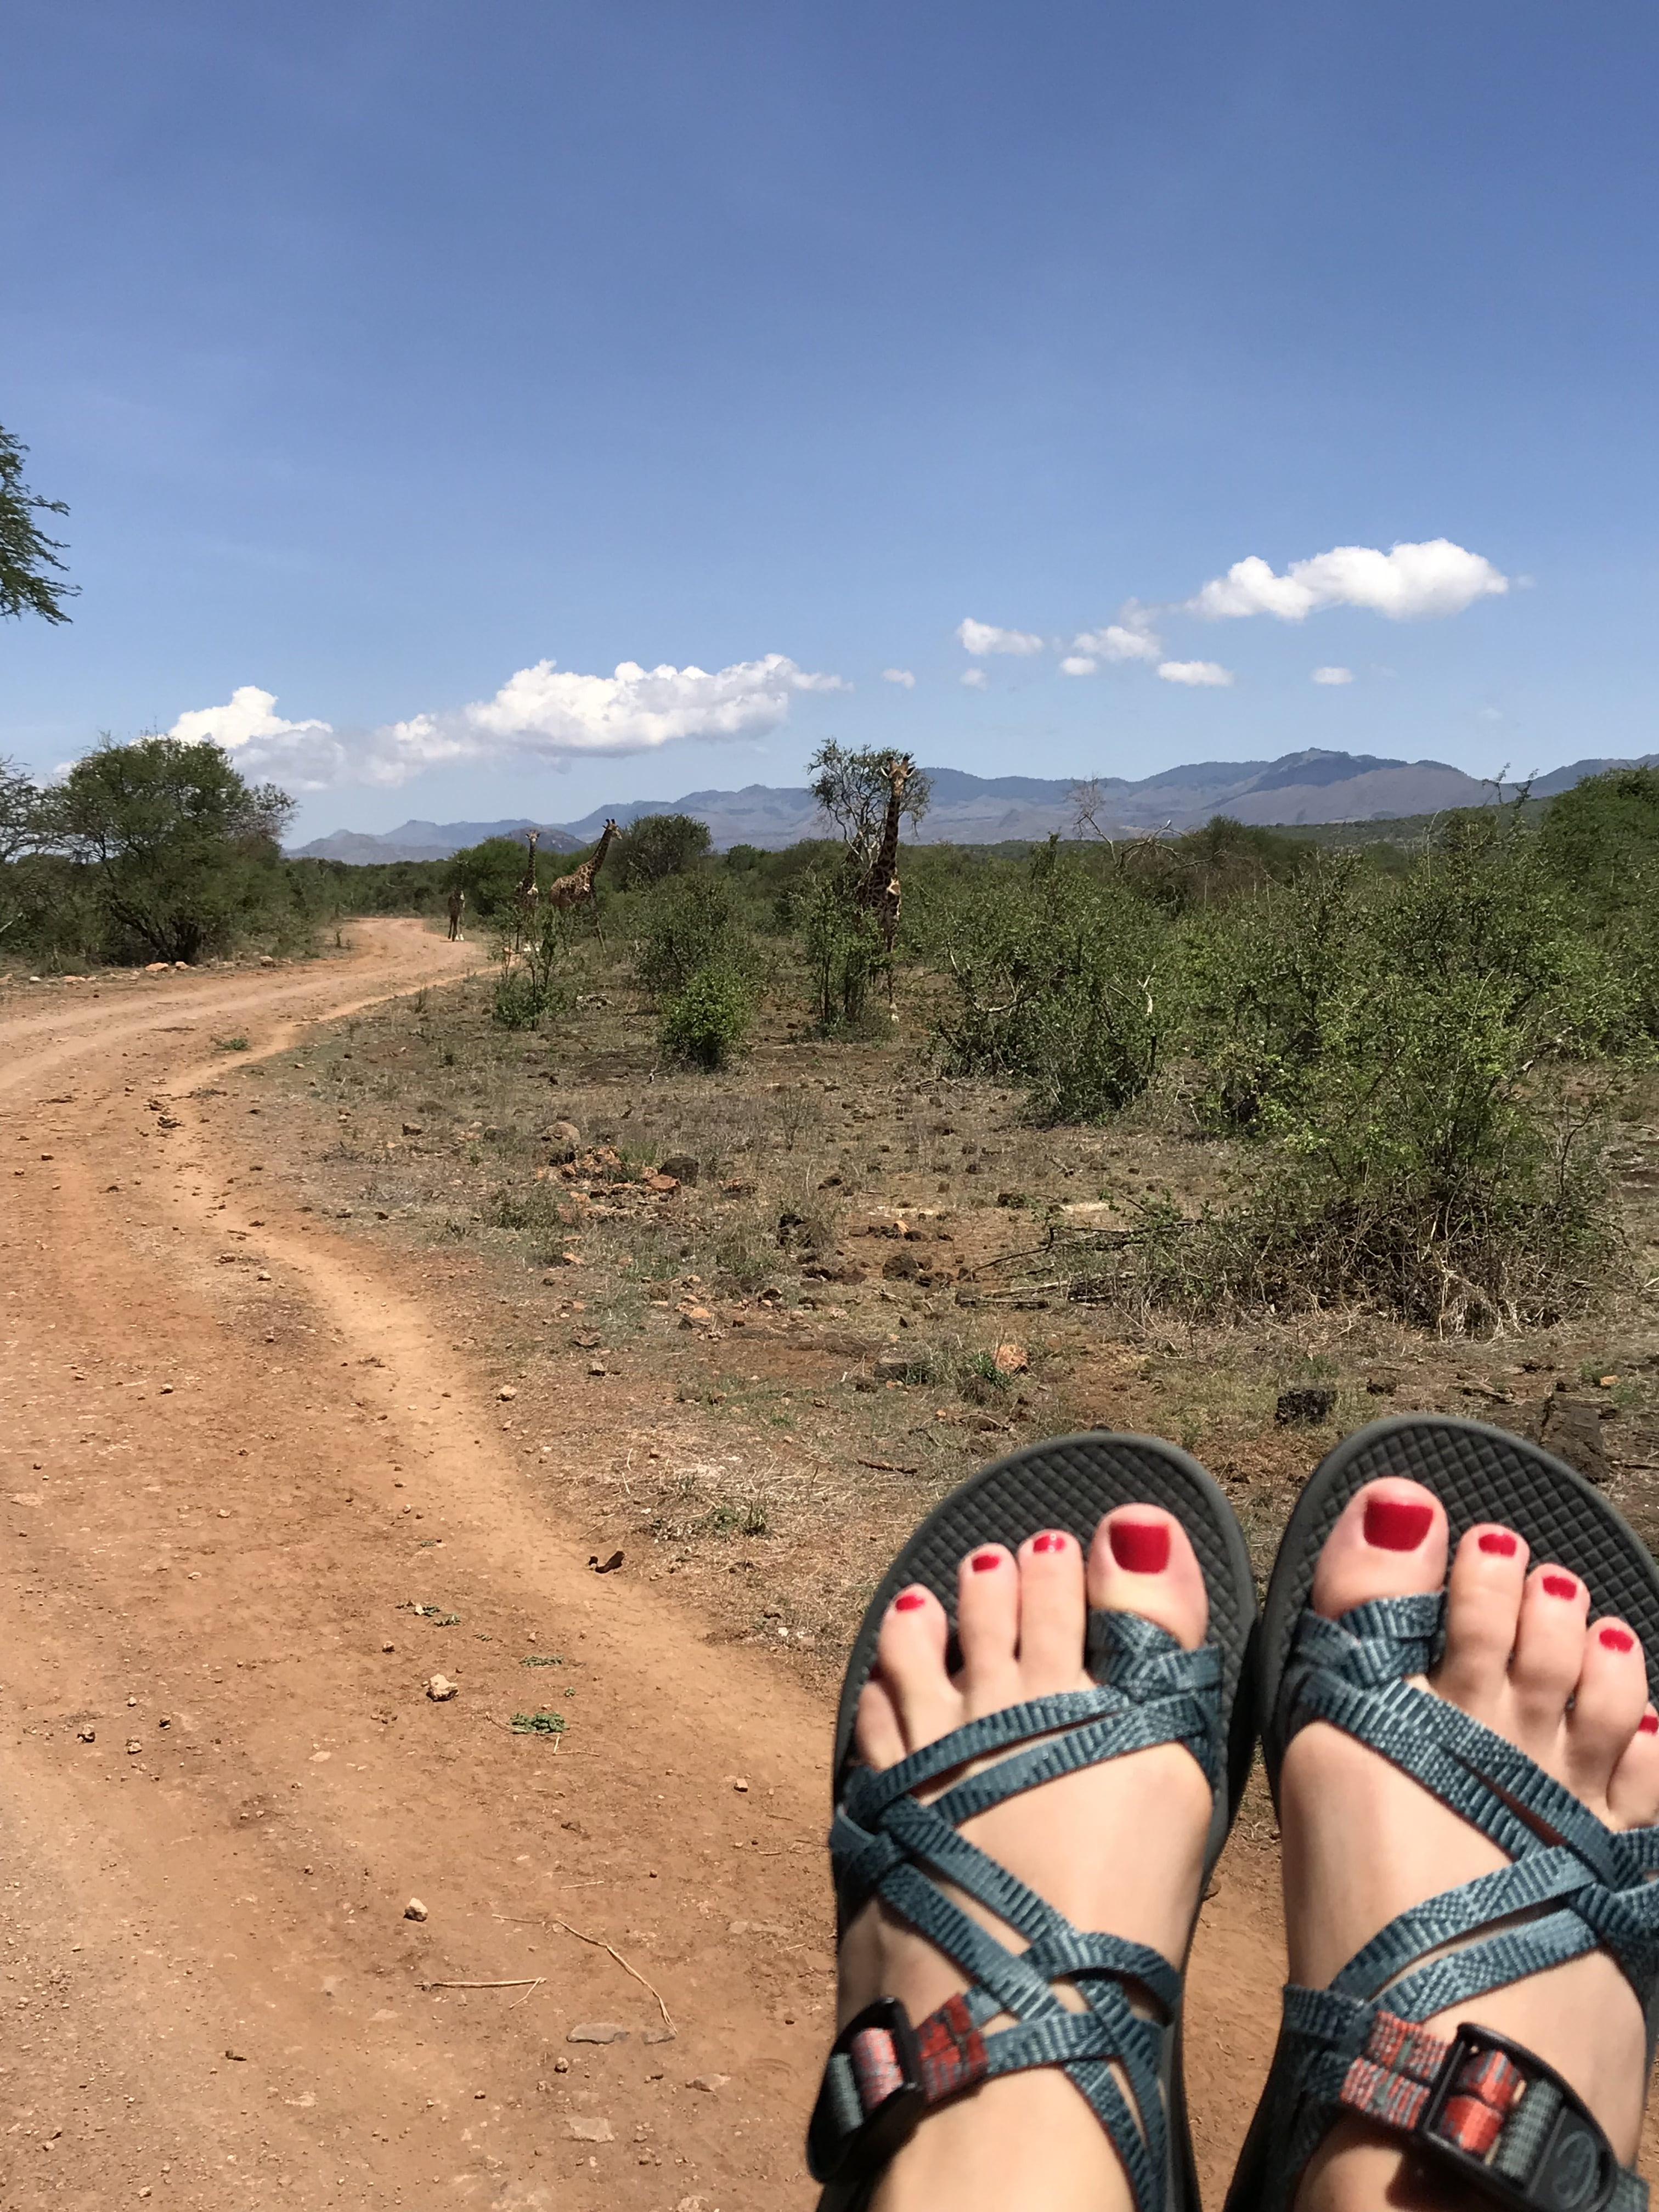 6 Reasons Why Chacos Should Be Your Next Shoe Purchase - Chacos - Chaco Sandals - Womens Chacos - Chaco Footwear - Womens Chacos Sandals - Chacos Sandals Review - Are Chacos Comfortable - Ladies Chacos - Chacos Sale - www.chacos.com - #chacos #travelblog